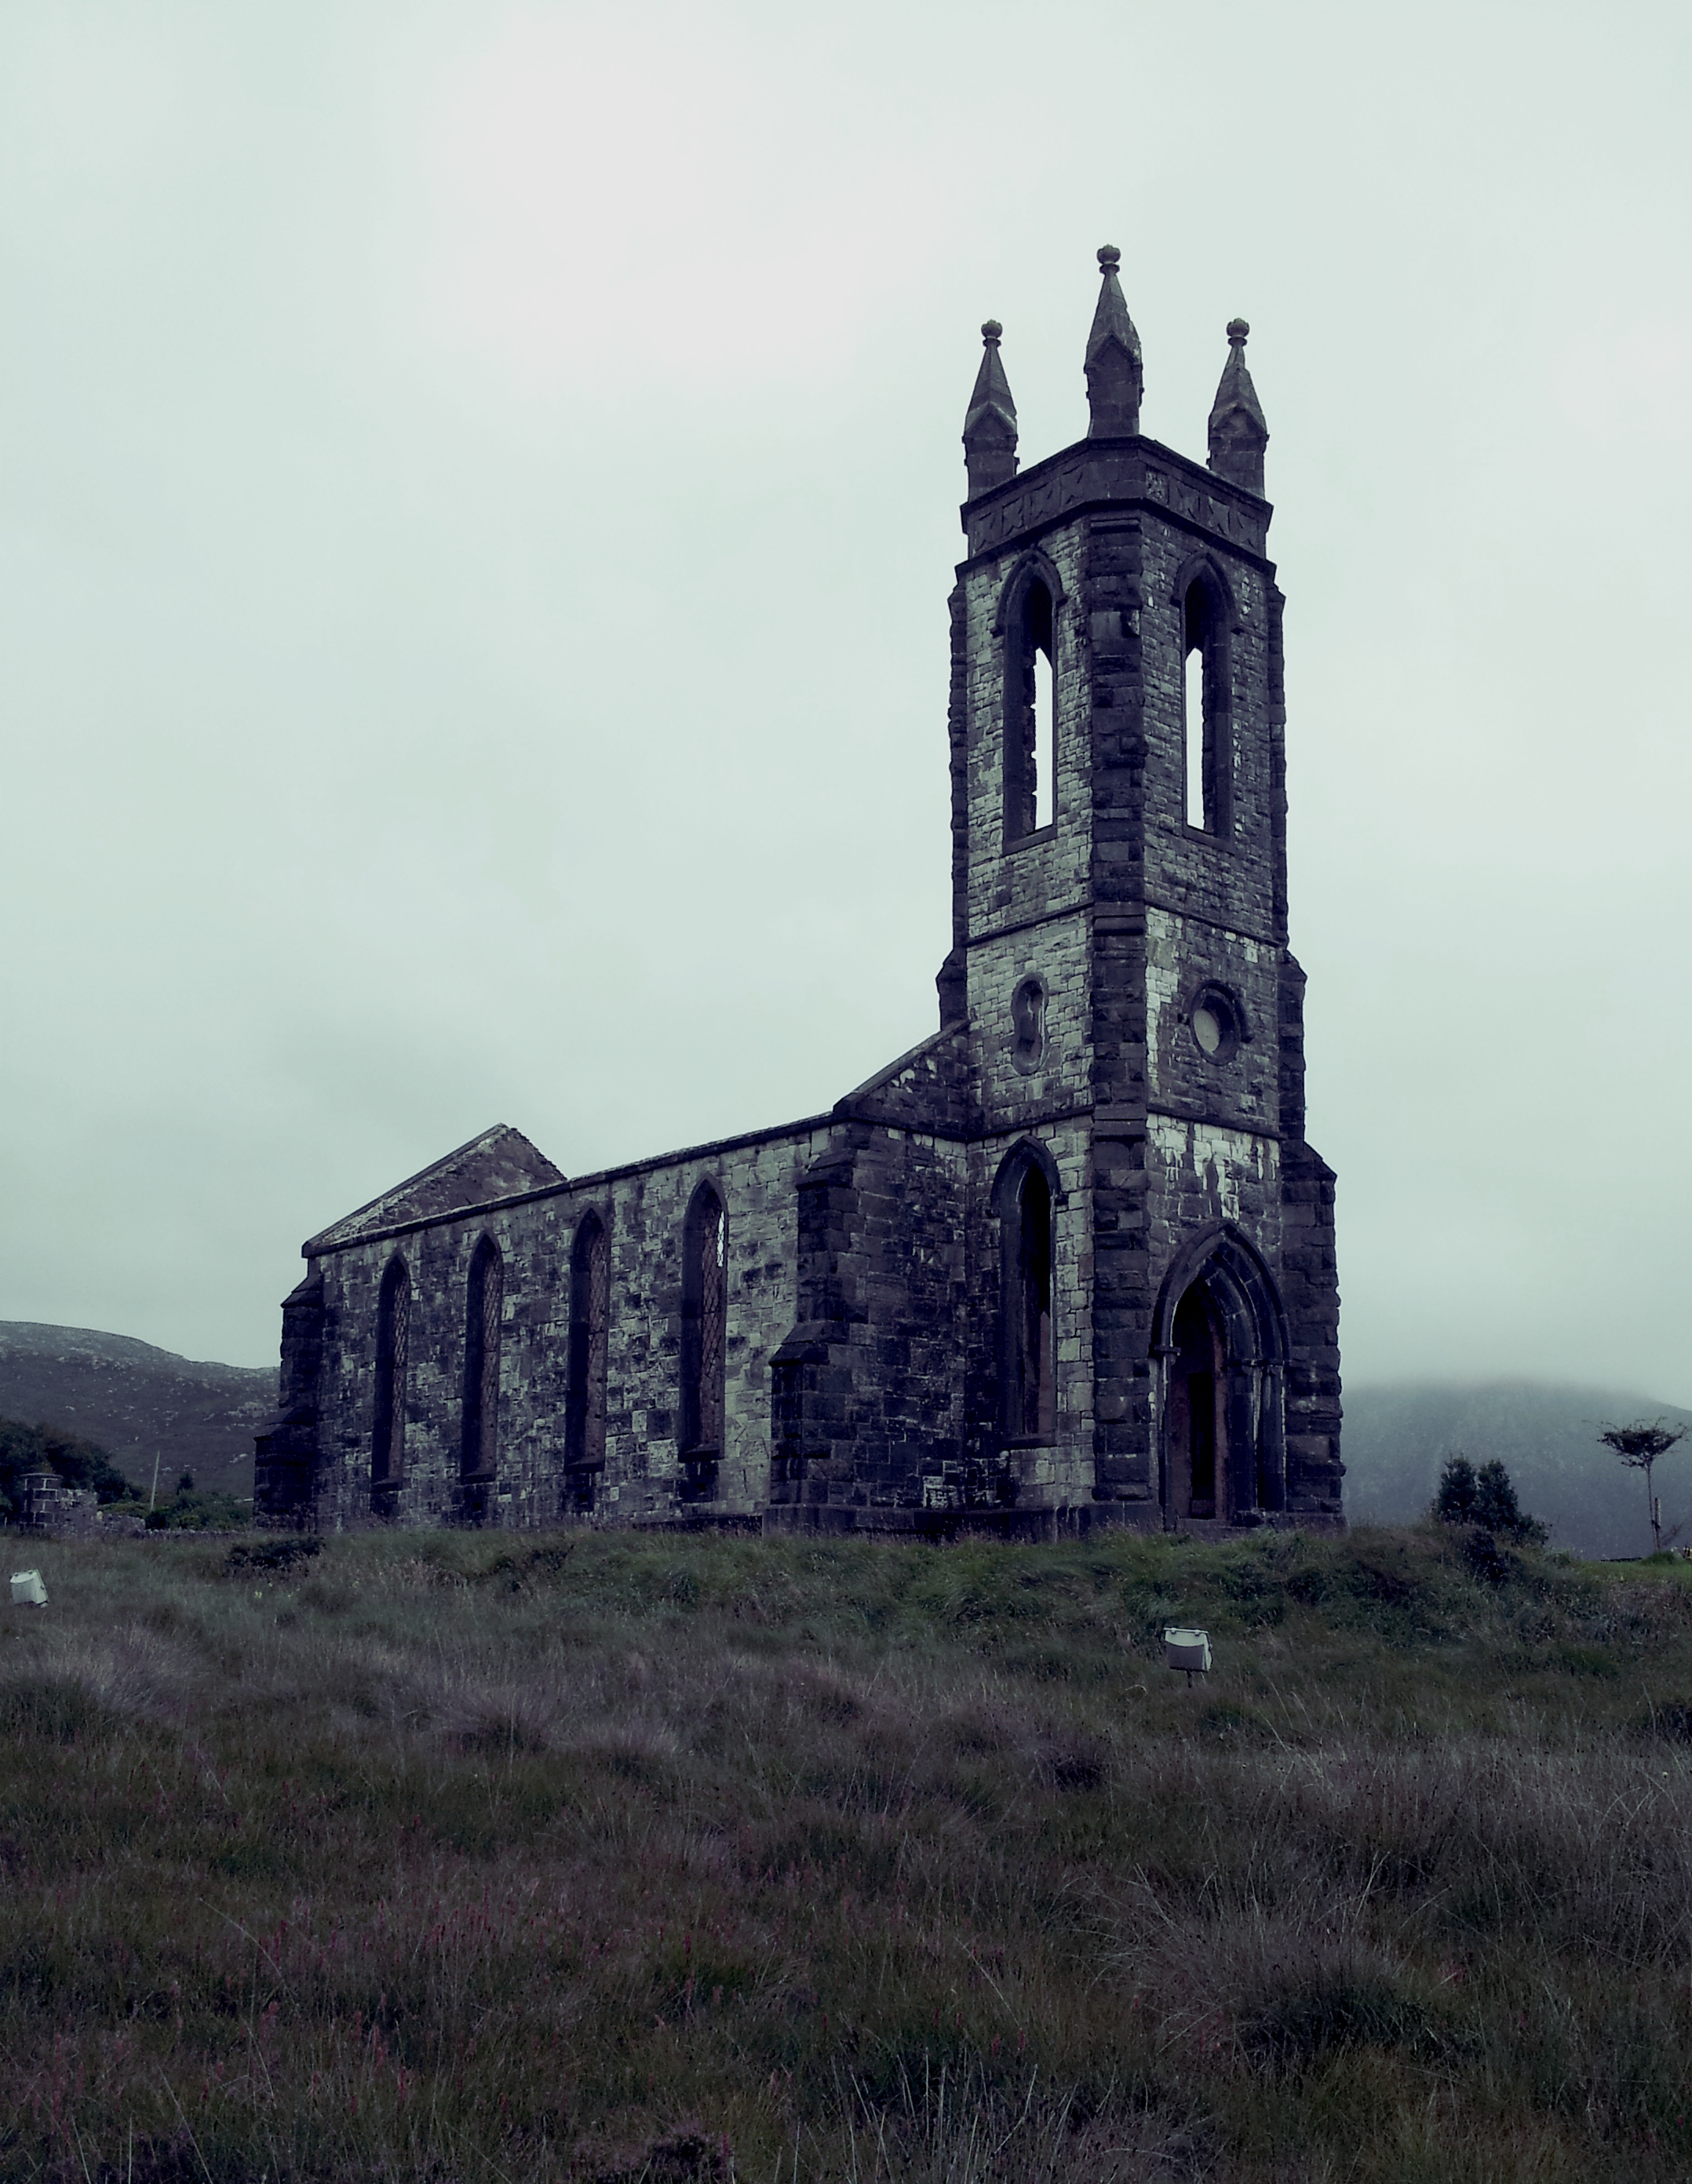 The Dunlewy Church Haunting